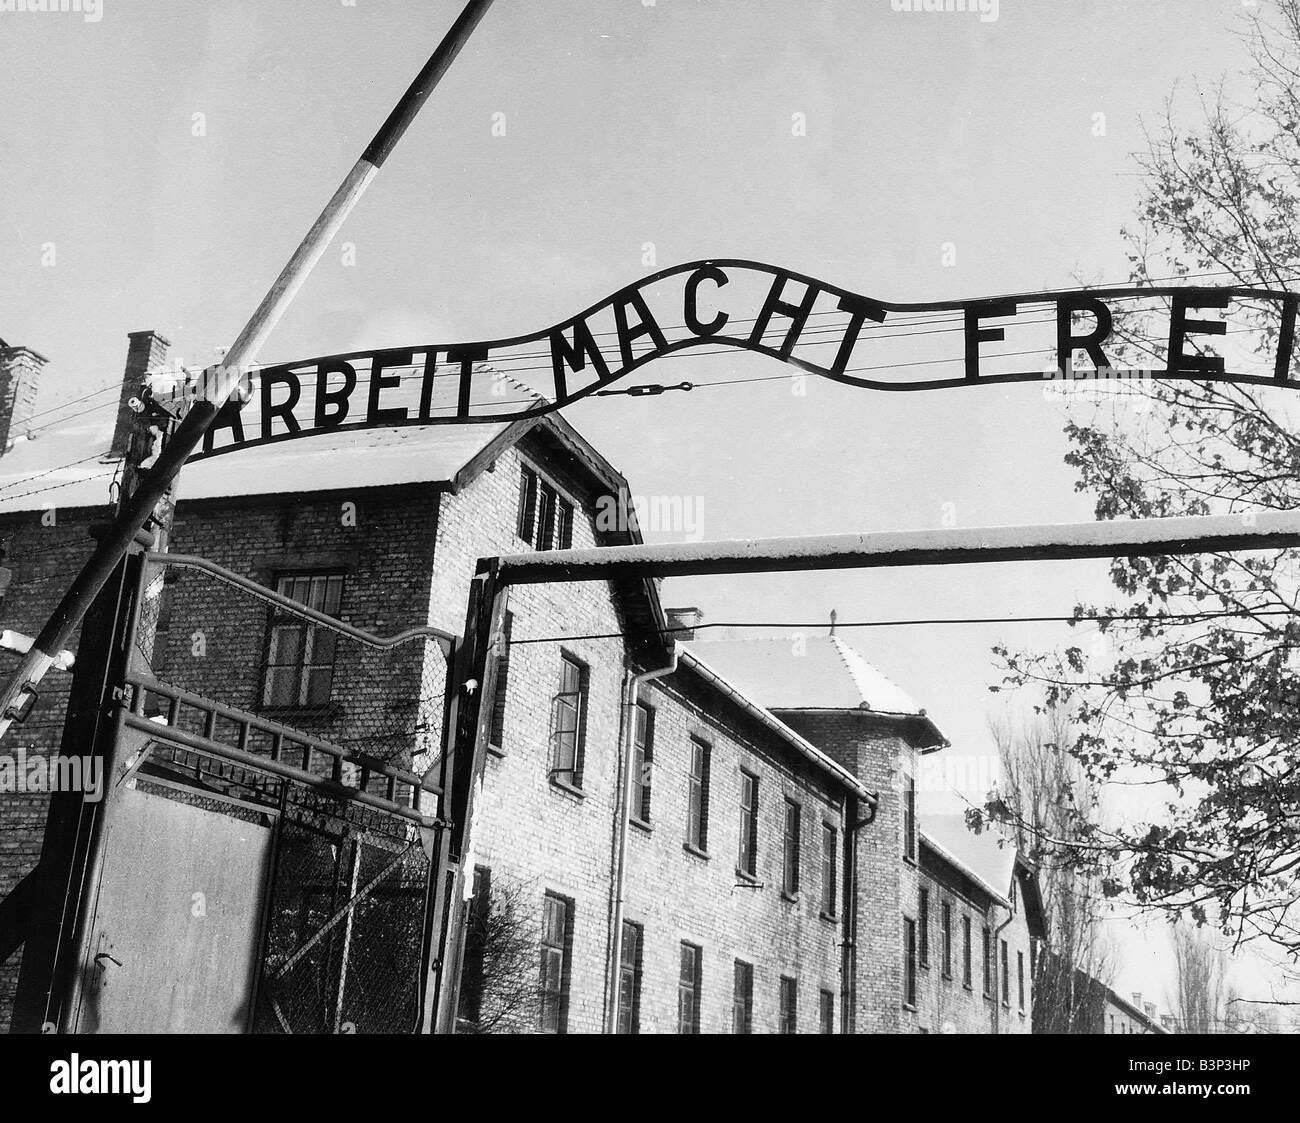 Where Was The Auschwitz Camp Located: Entrance To Auschwitz Concentration Camp March 1964 In